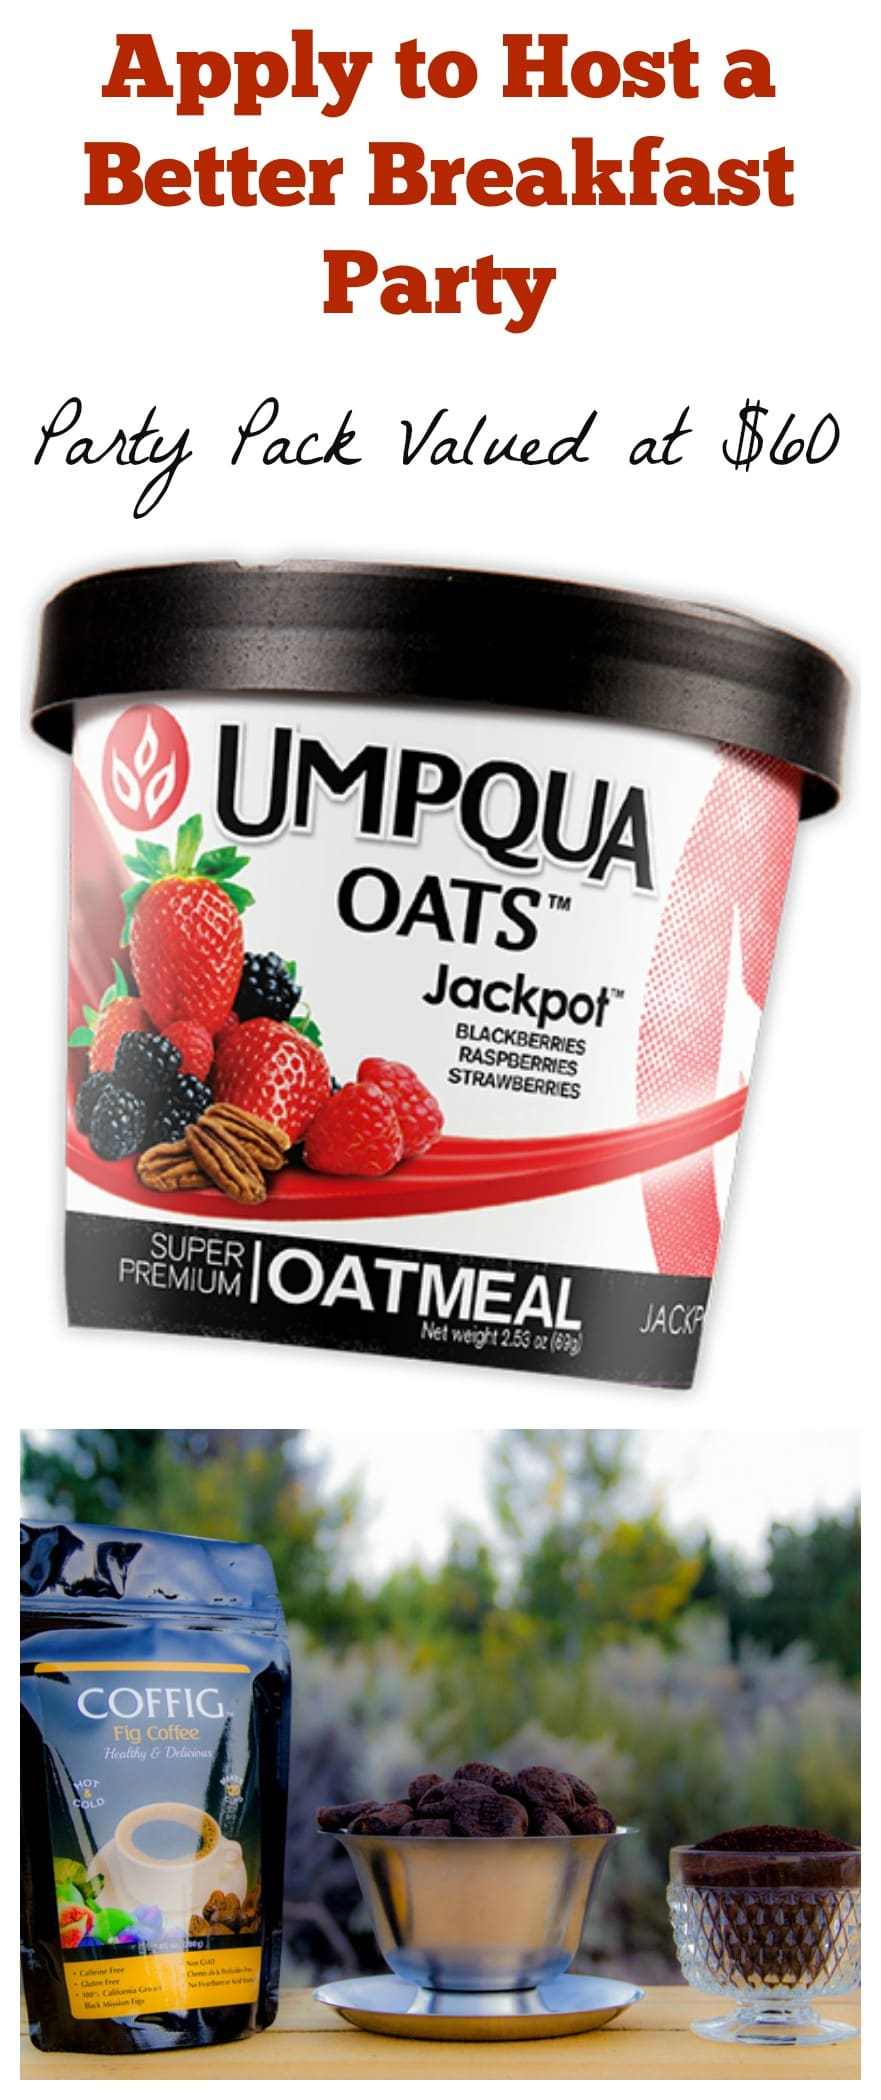 Better Breakfast Party with Umpqua Oats & Coffig